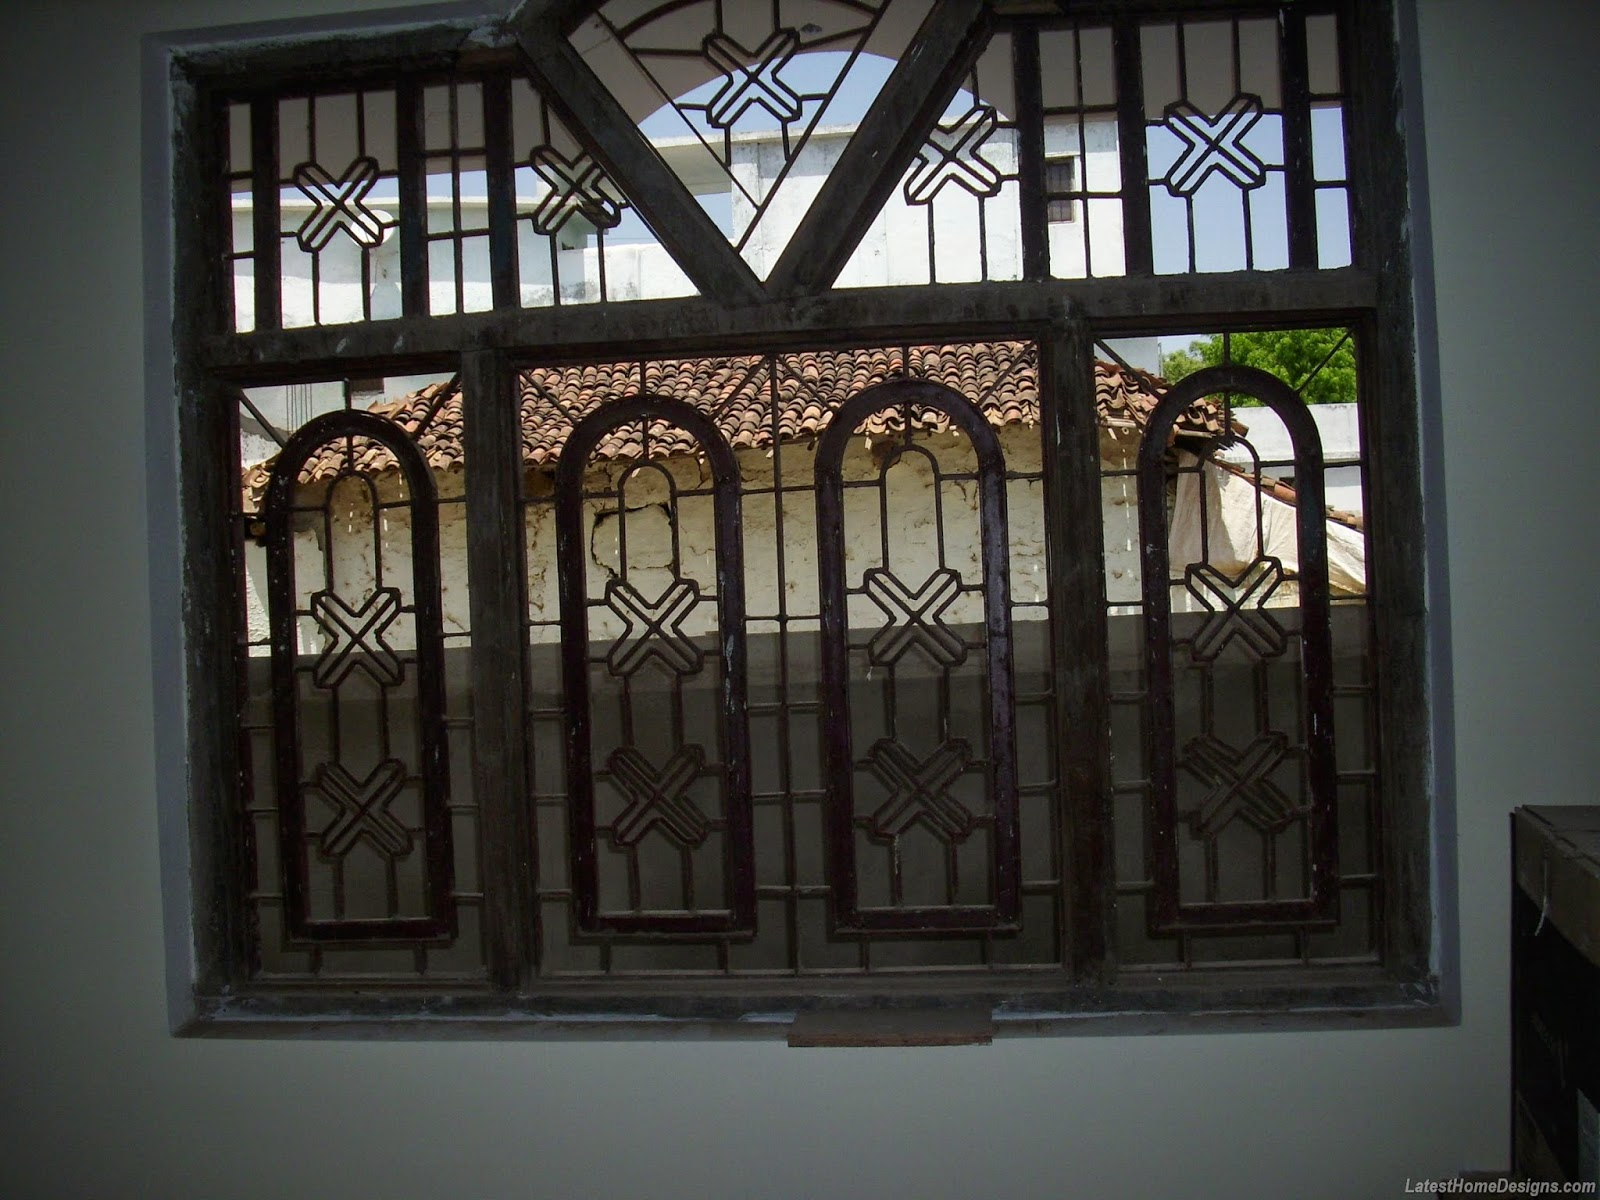 Window Grill Designs For Homes Window Grills Design Wood Window Well